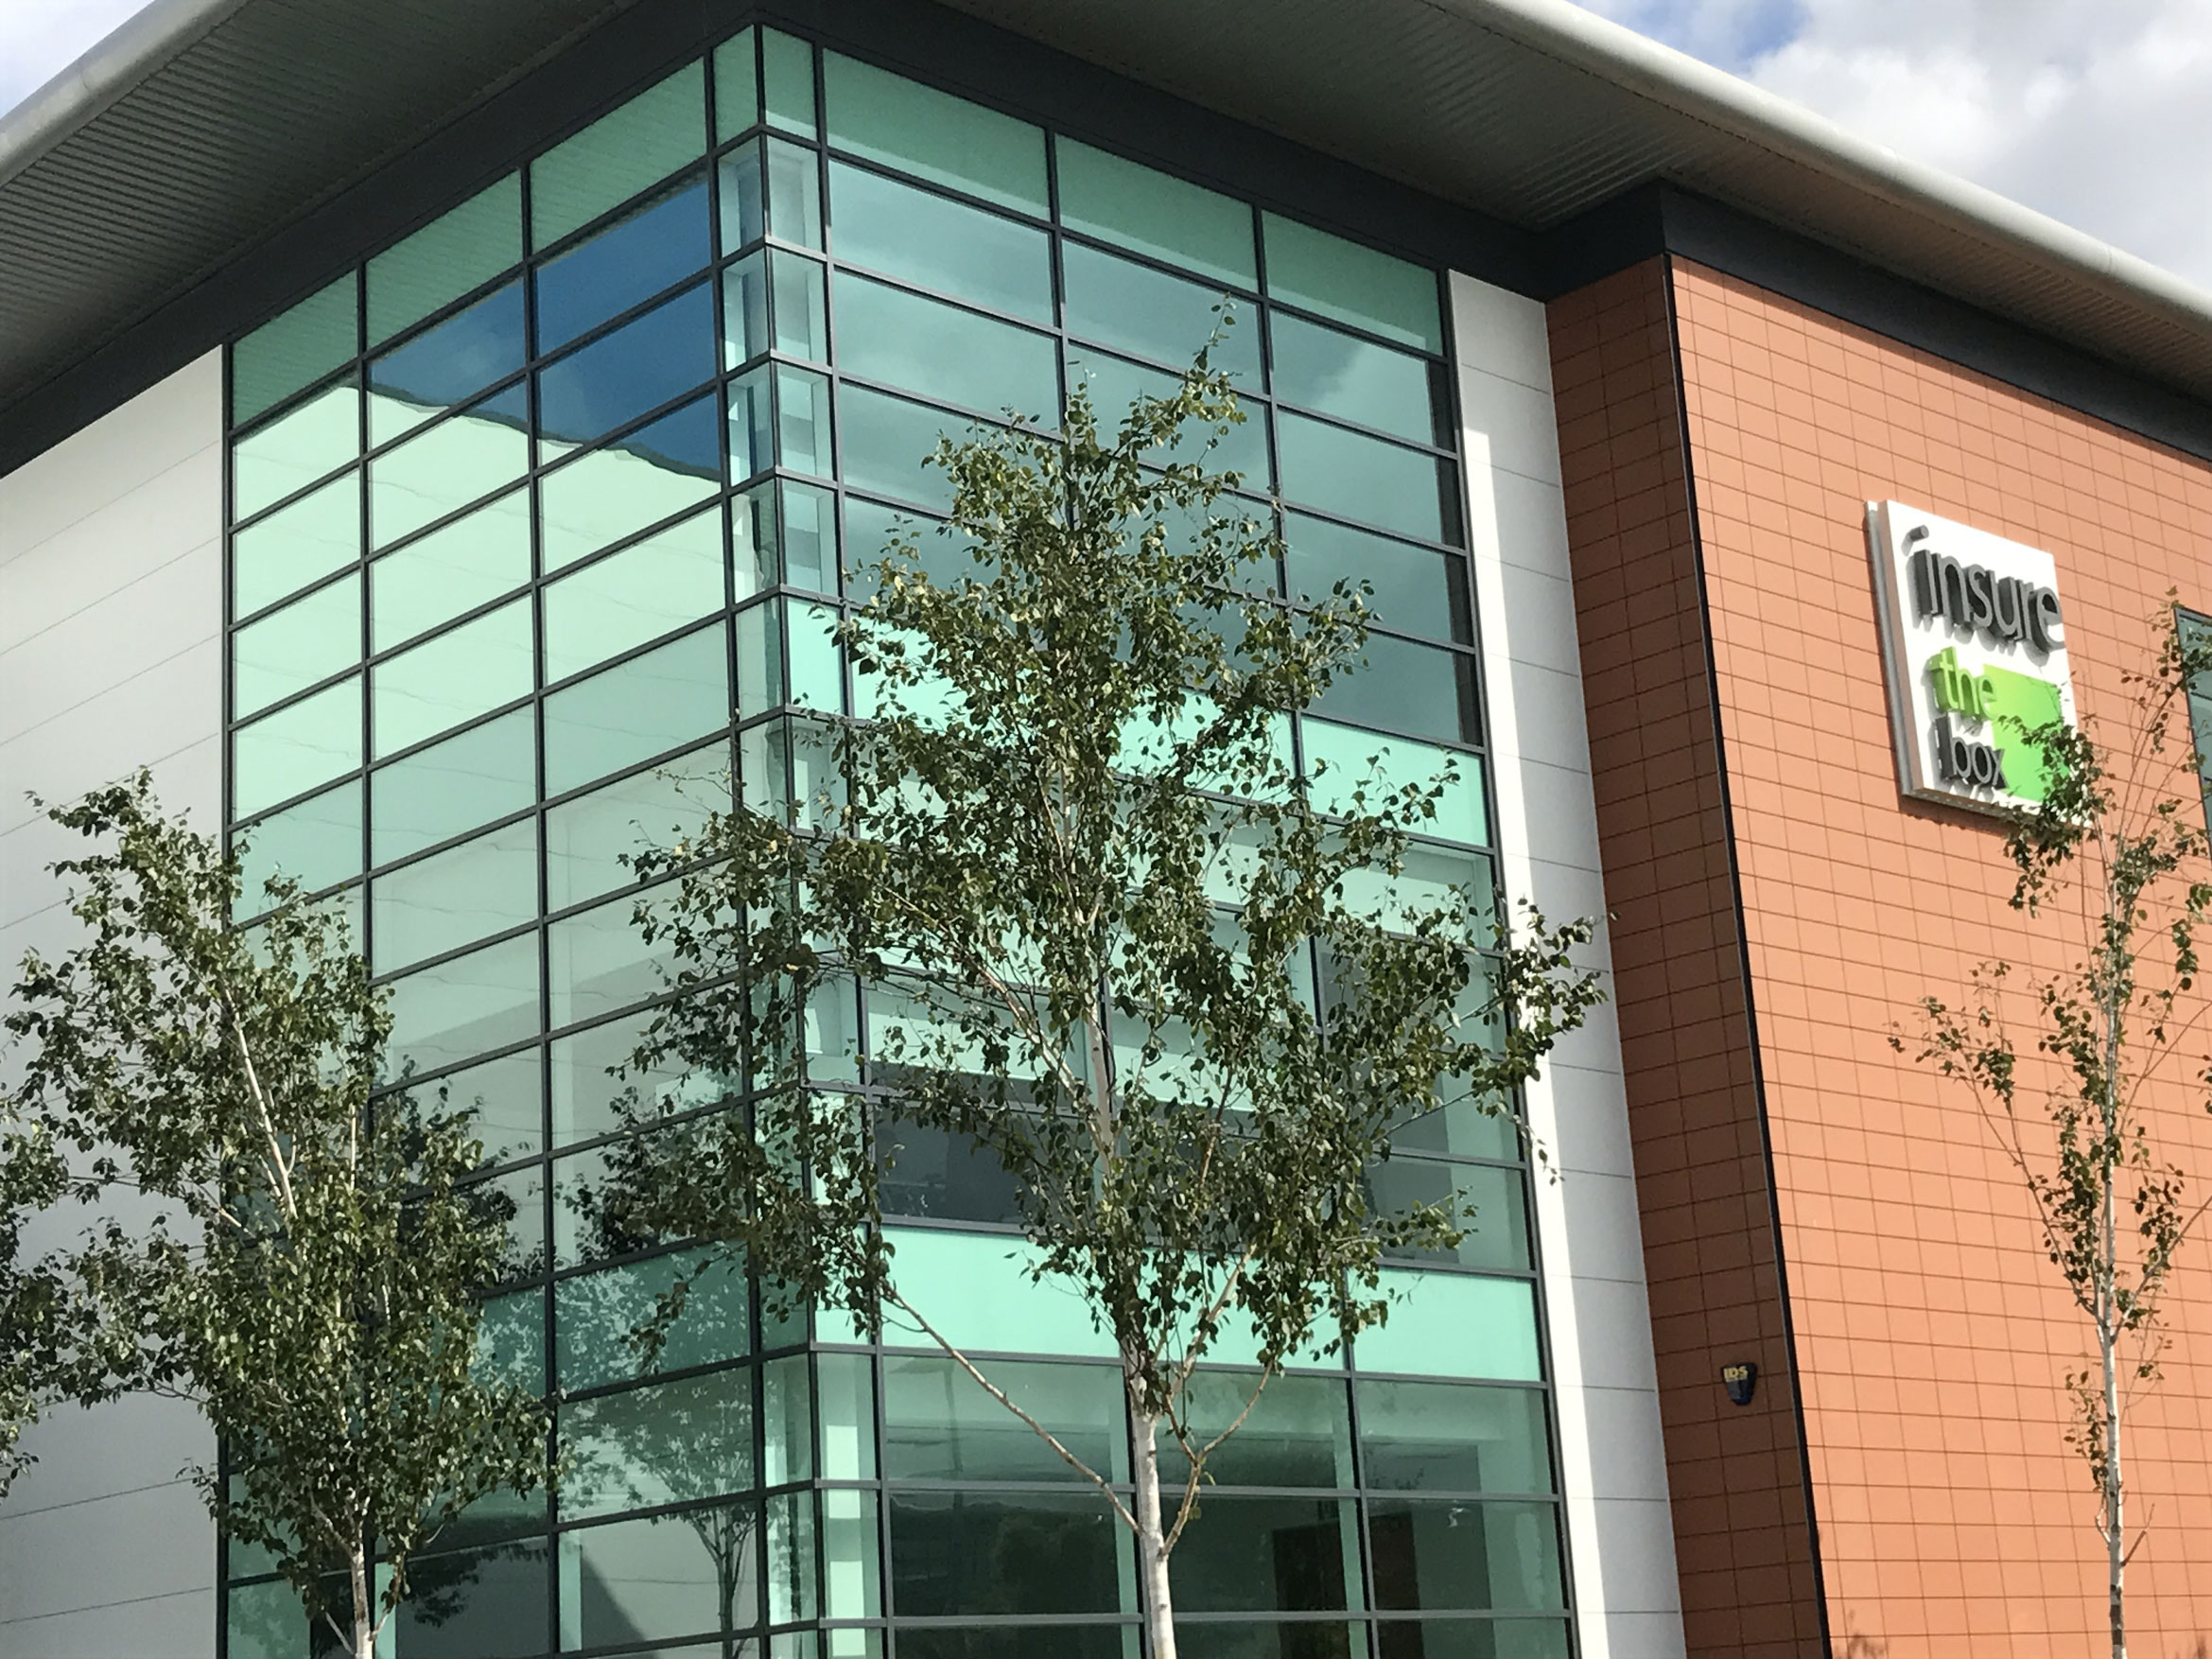 Reflective film fitted to windows at quorum business park to reduce glare and heat build up